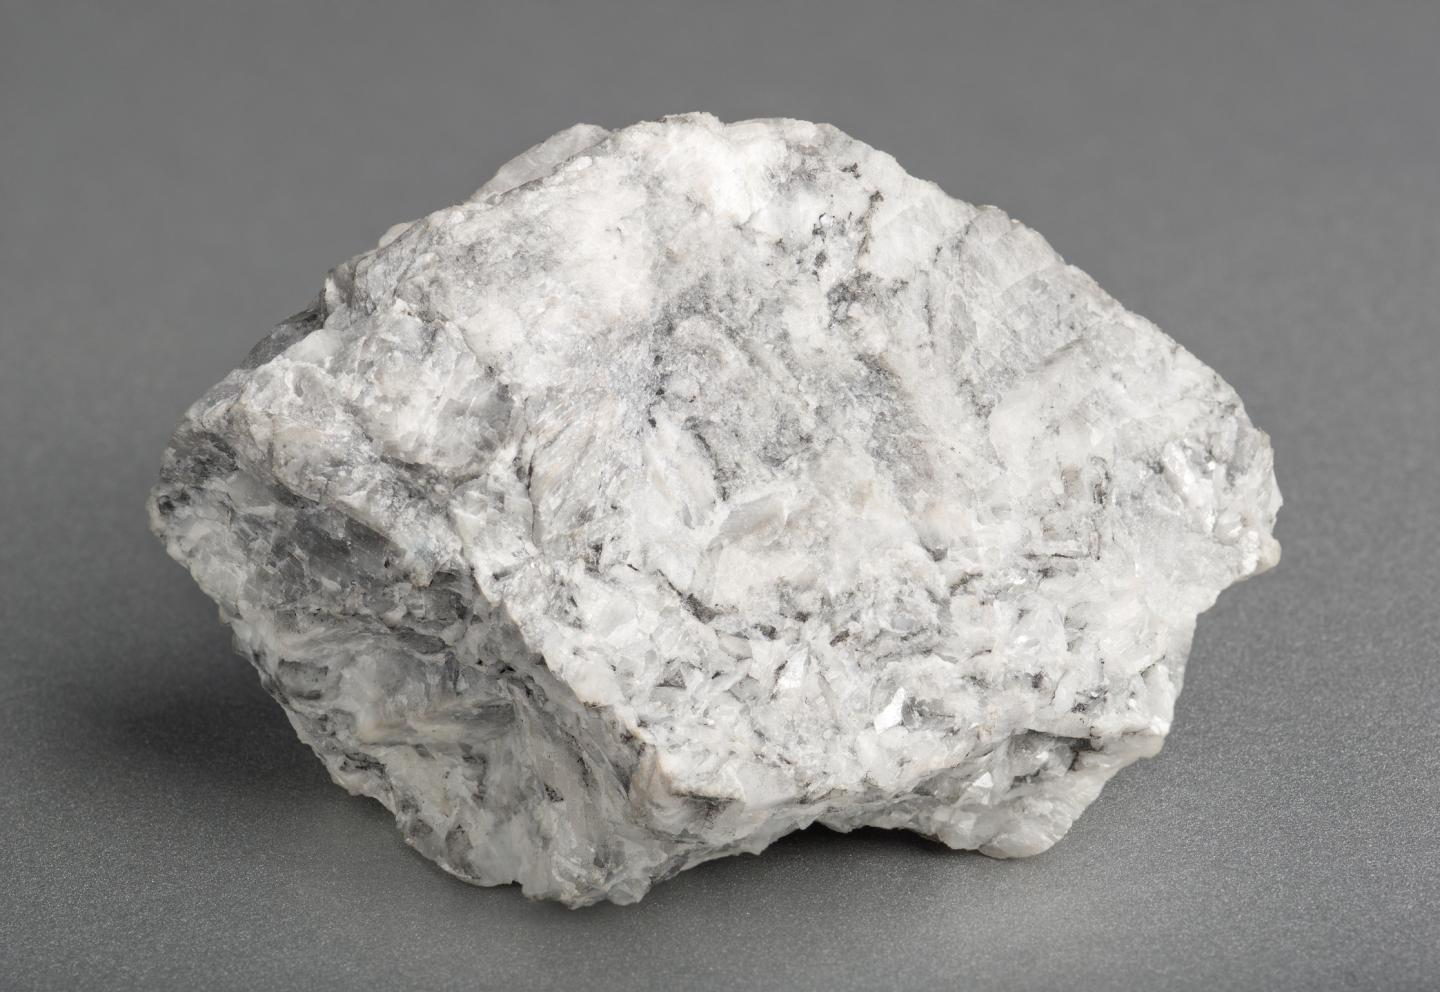 The mineral magnesite